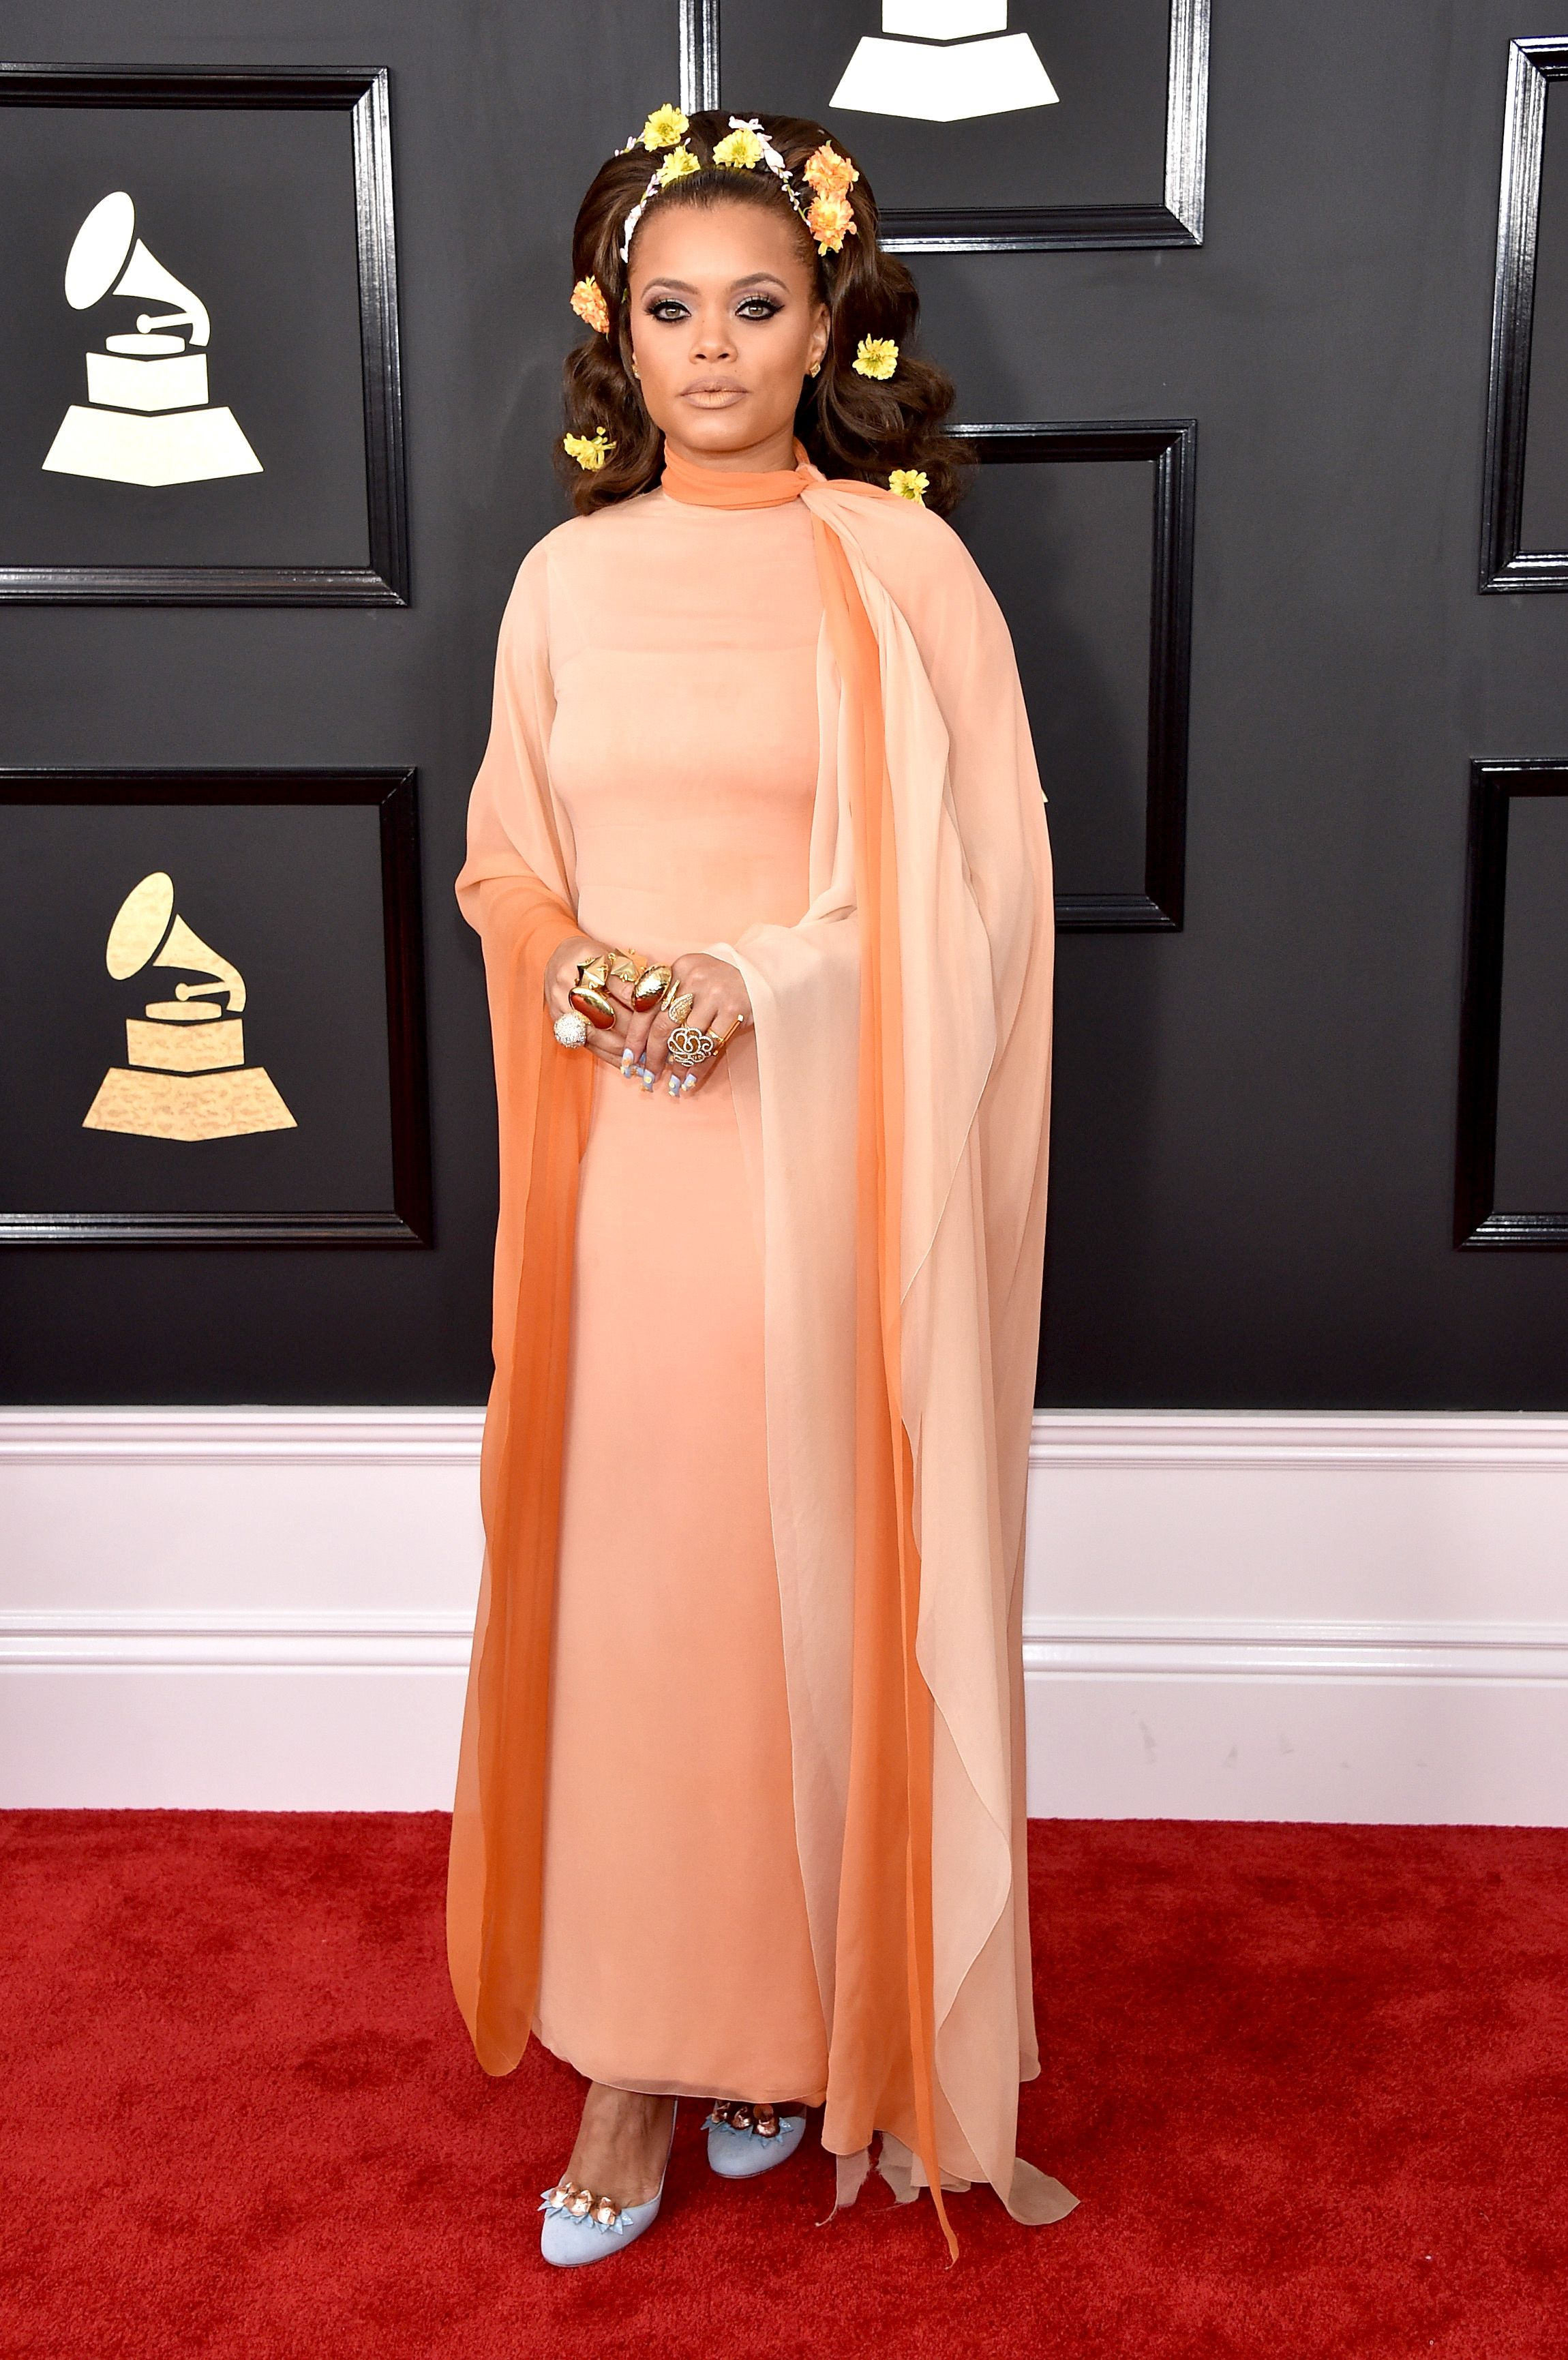 Diana gordon on red carpet grammy awards in los angeles - 2019 year